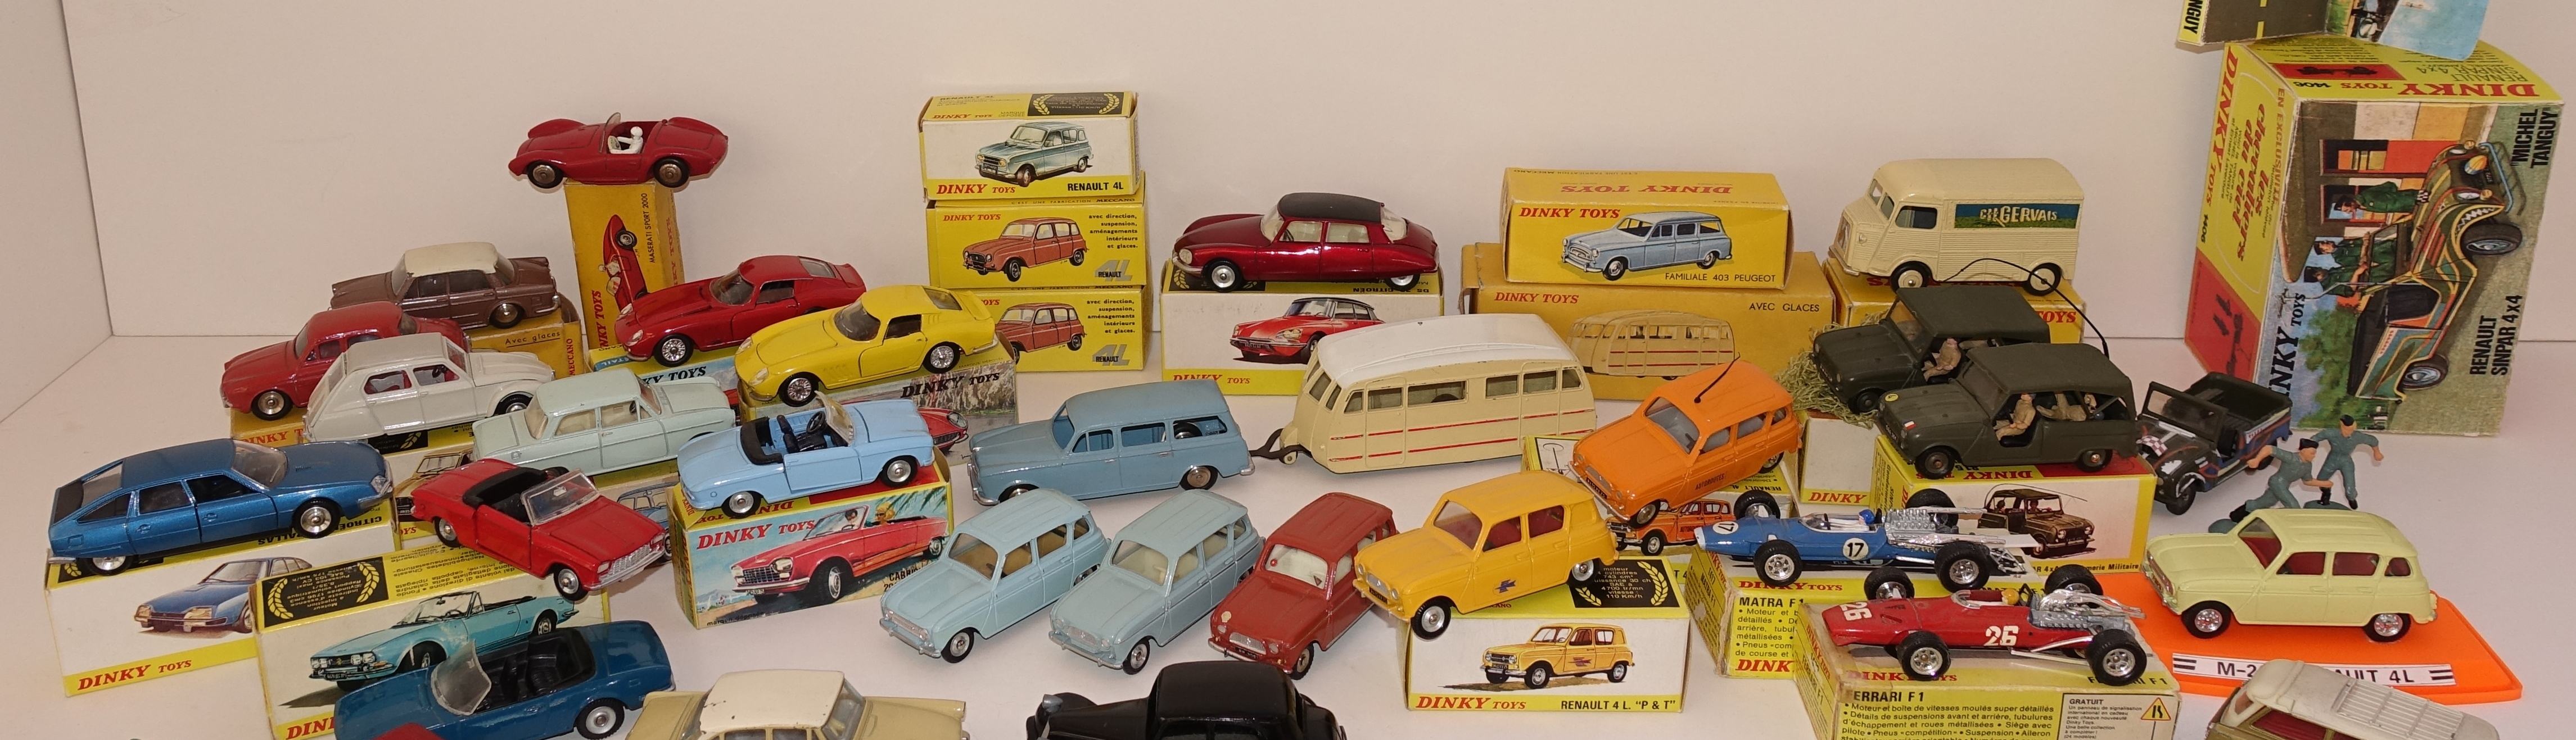 1 Dinky Toys France boxed